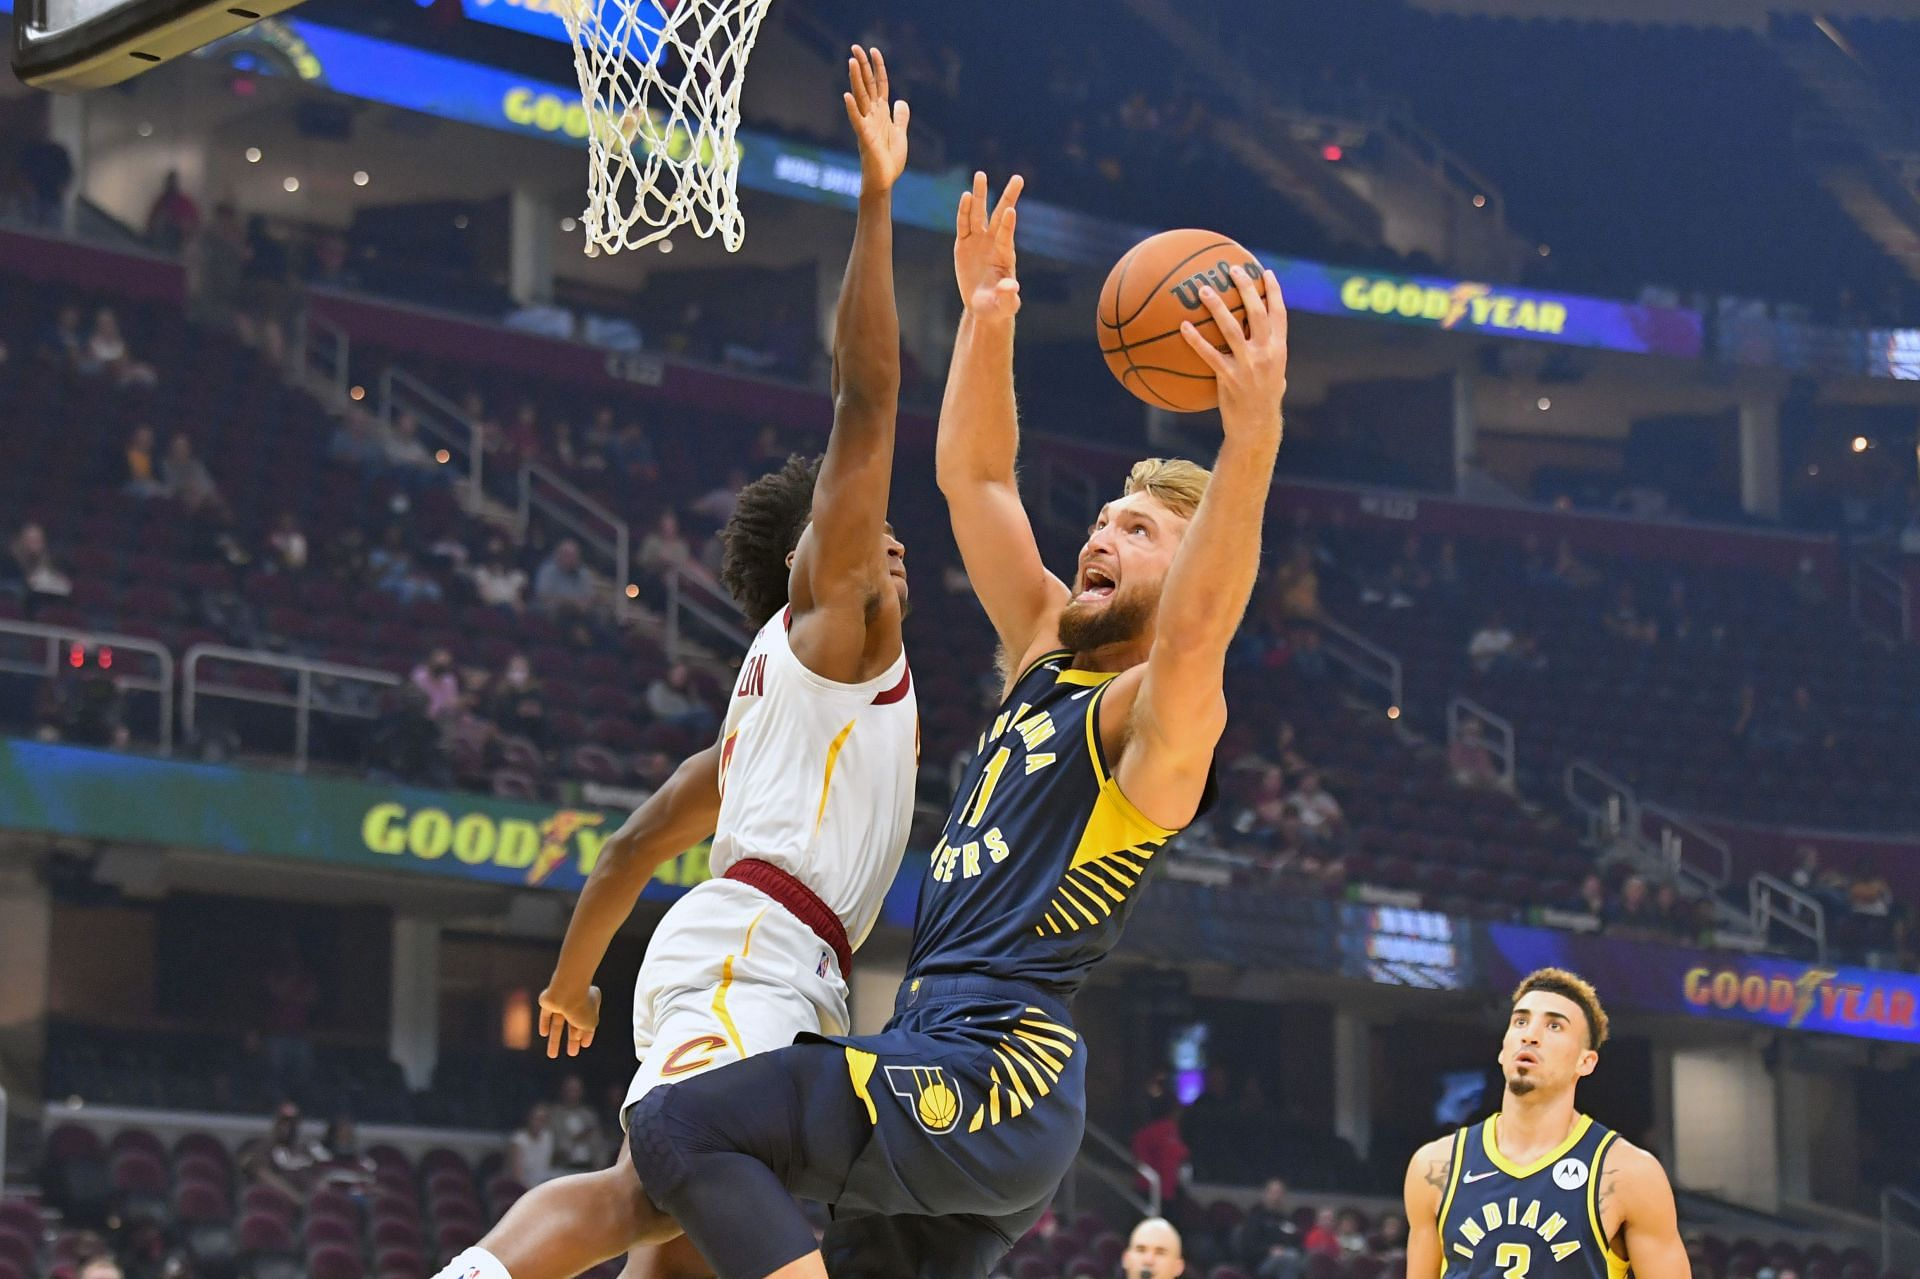 Indiana Pacers vs Cleveland Cavaliers